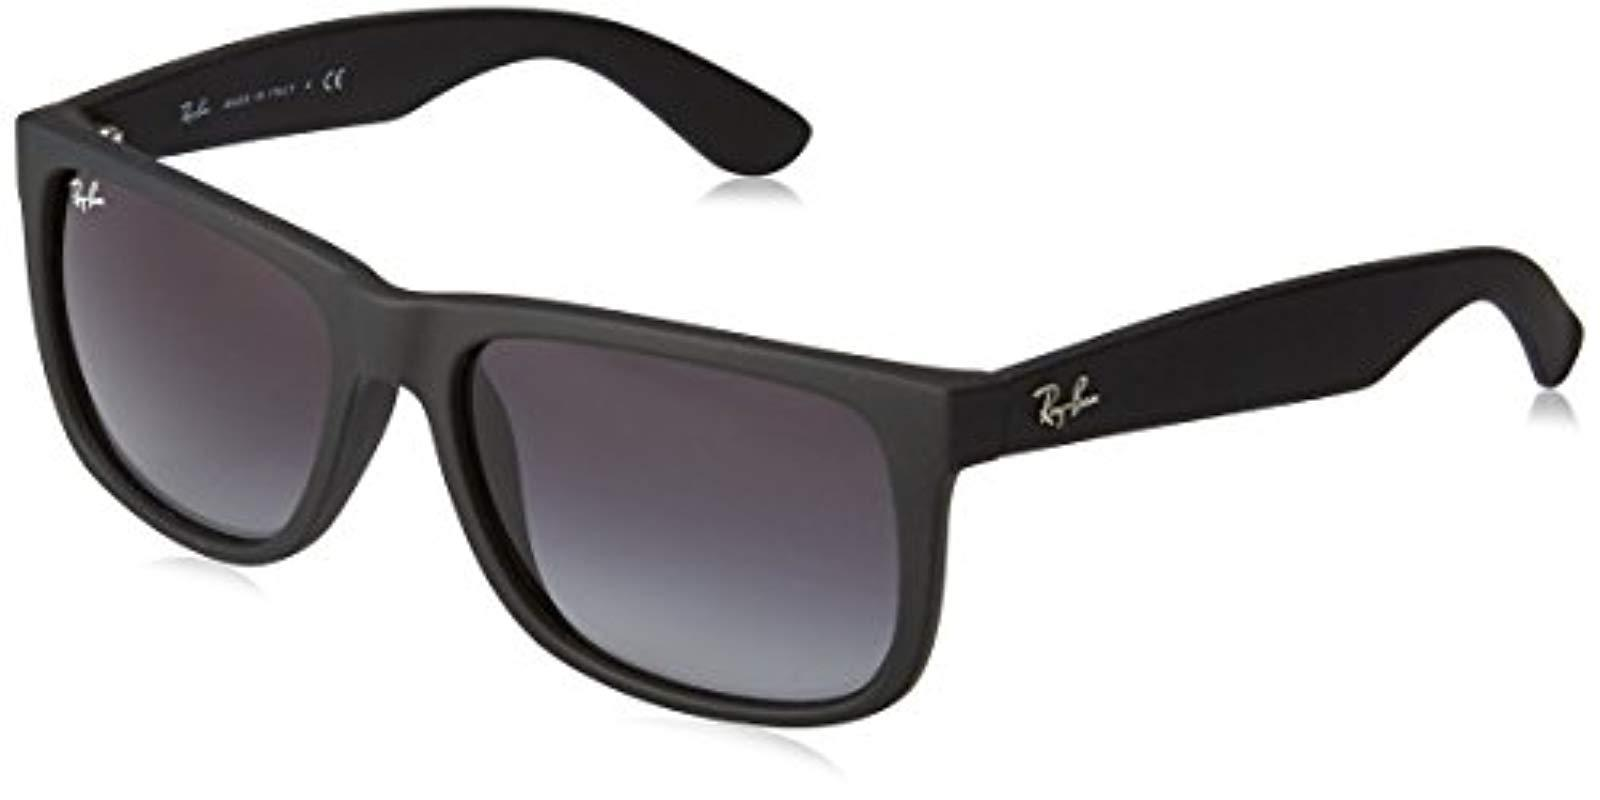 498f0374157 Ray-Ban Rb4165 Justin Sunglasses 54 Mm in Black for Men - Lyst